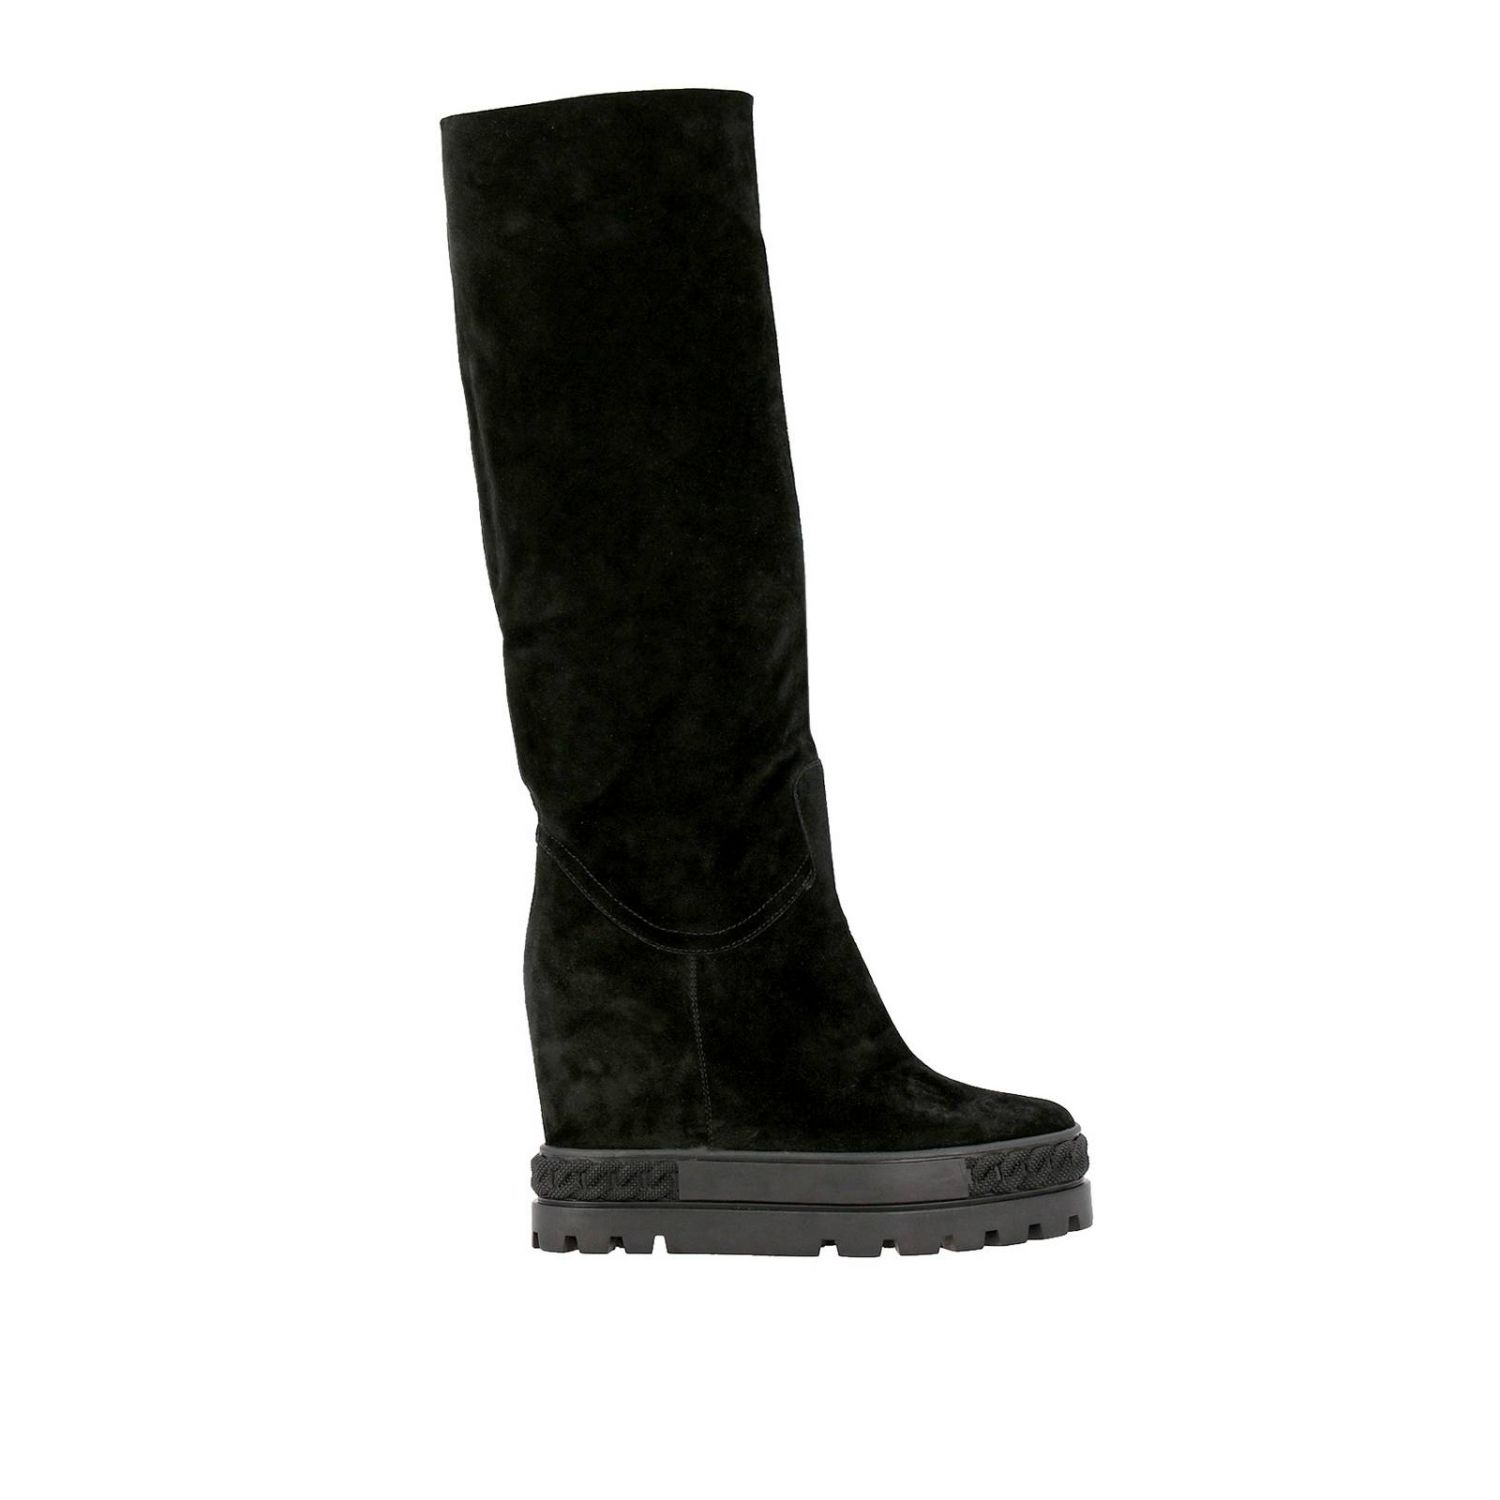 Renna Casadei double face sneaker boots in suede black 5